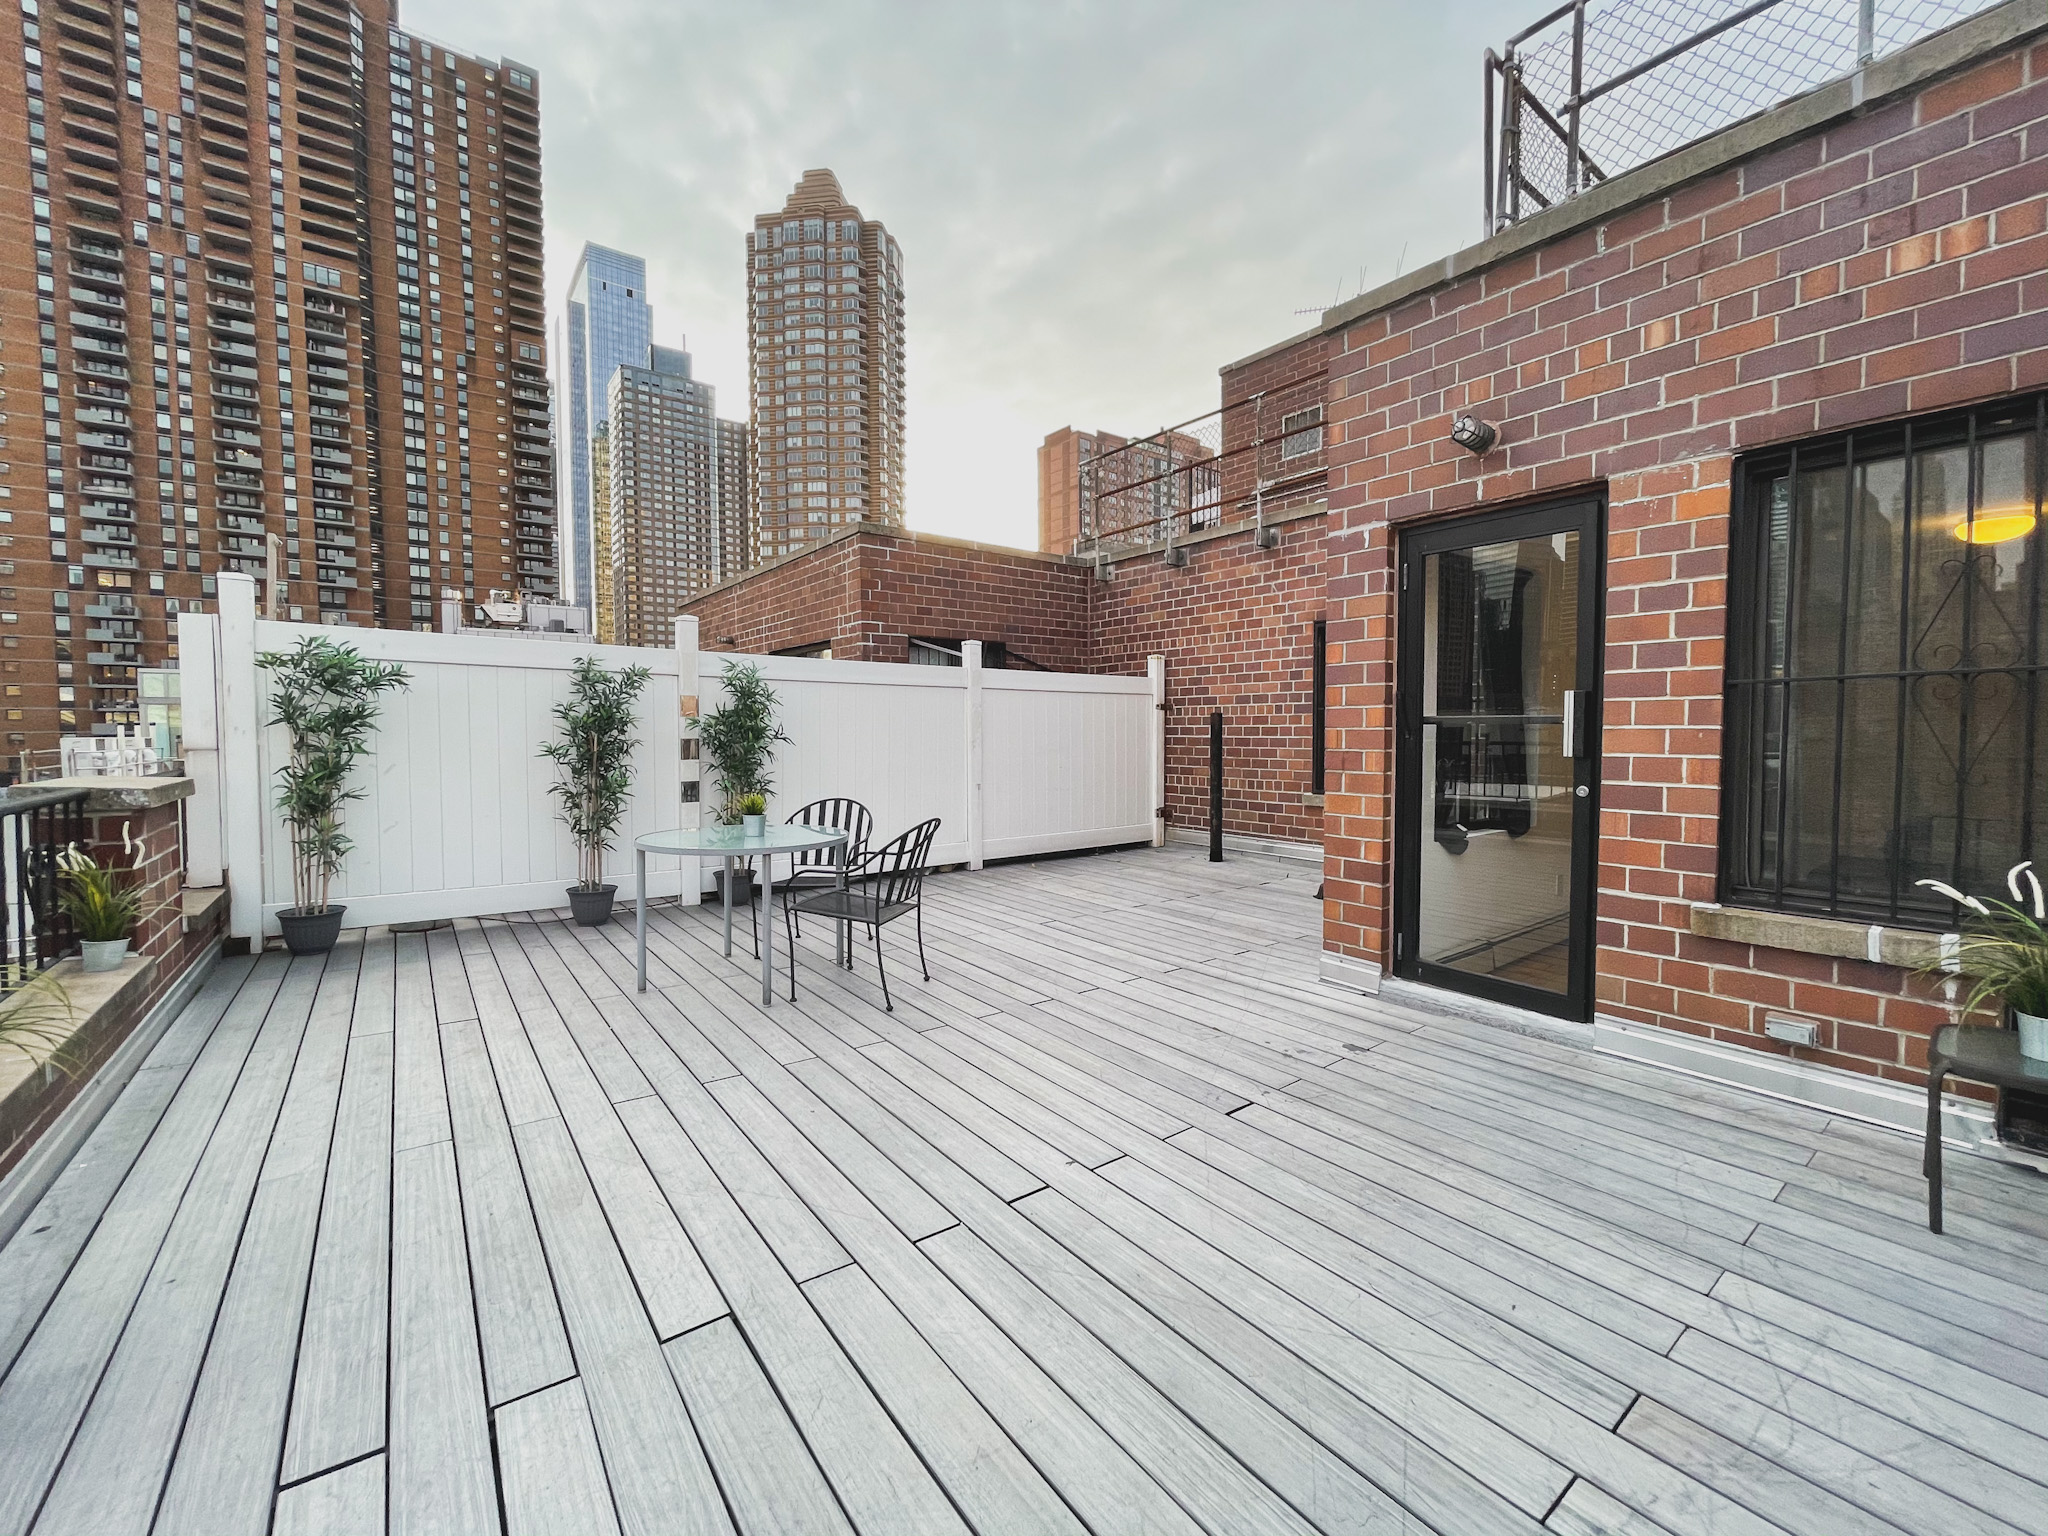 2 BED APARTMENT DUPLEX WITH HUGE PRIVATE ROOF DECK